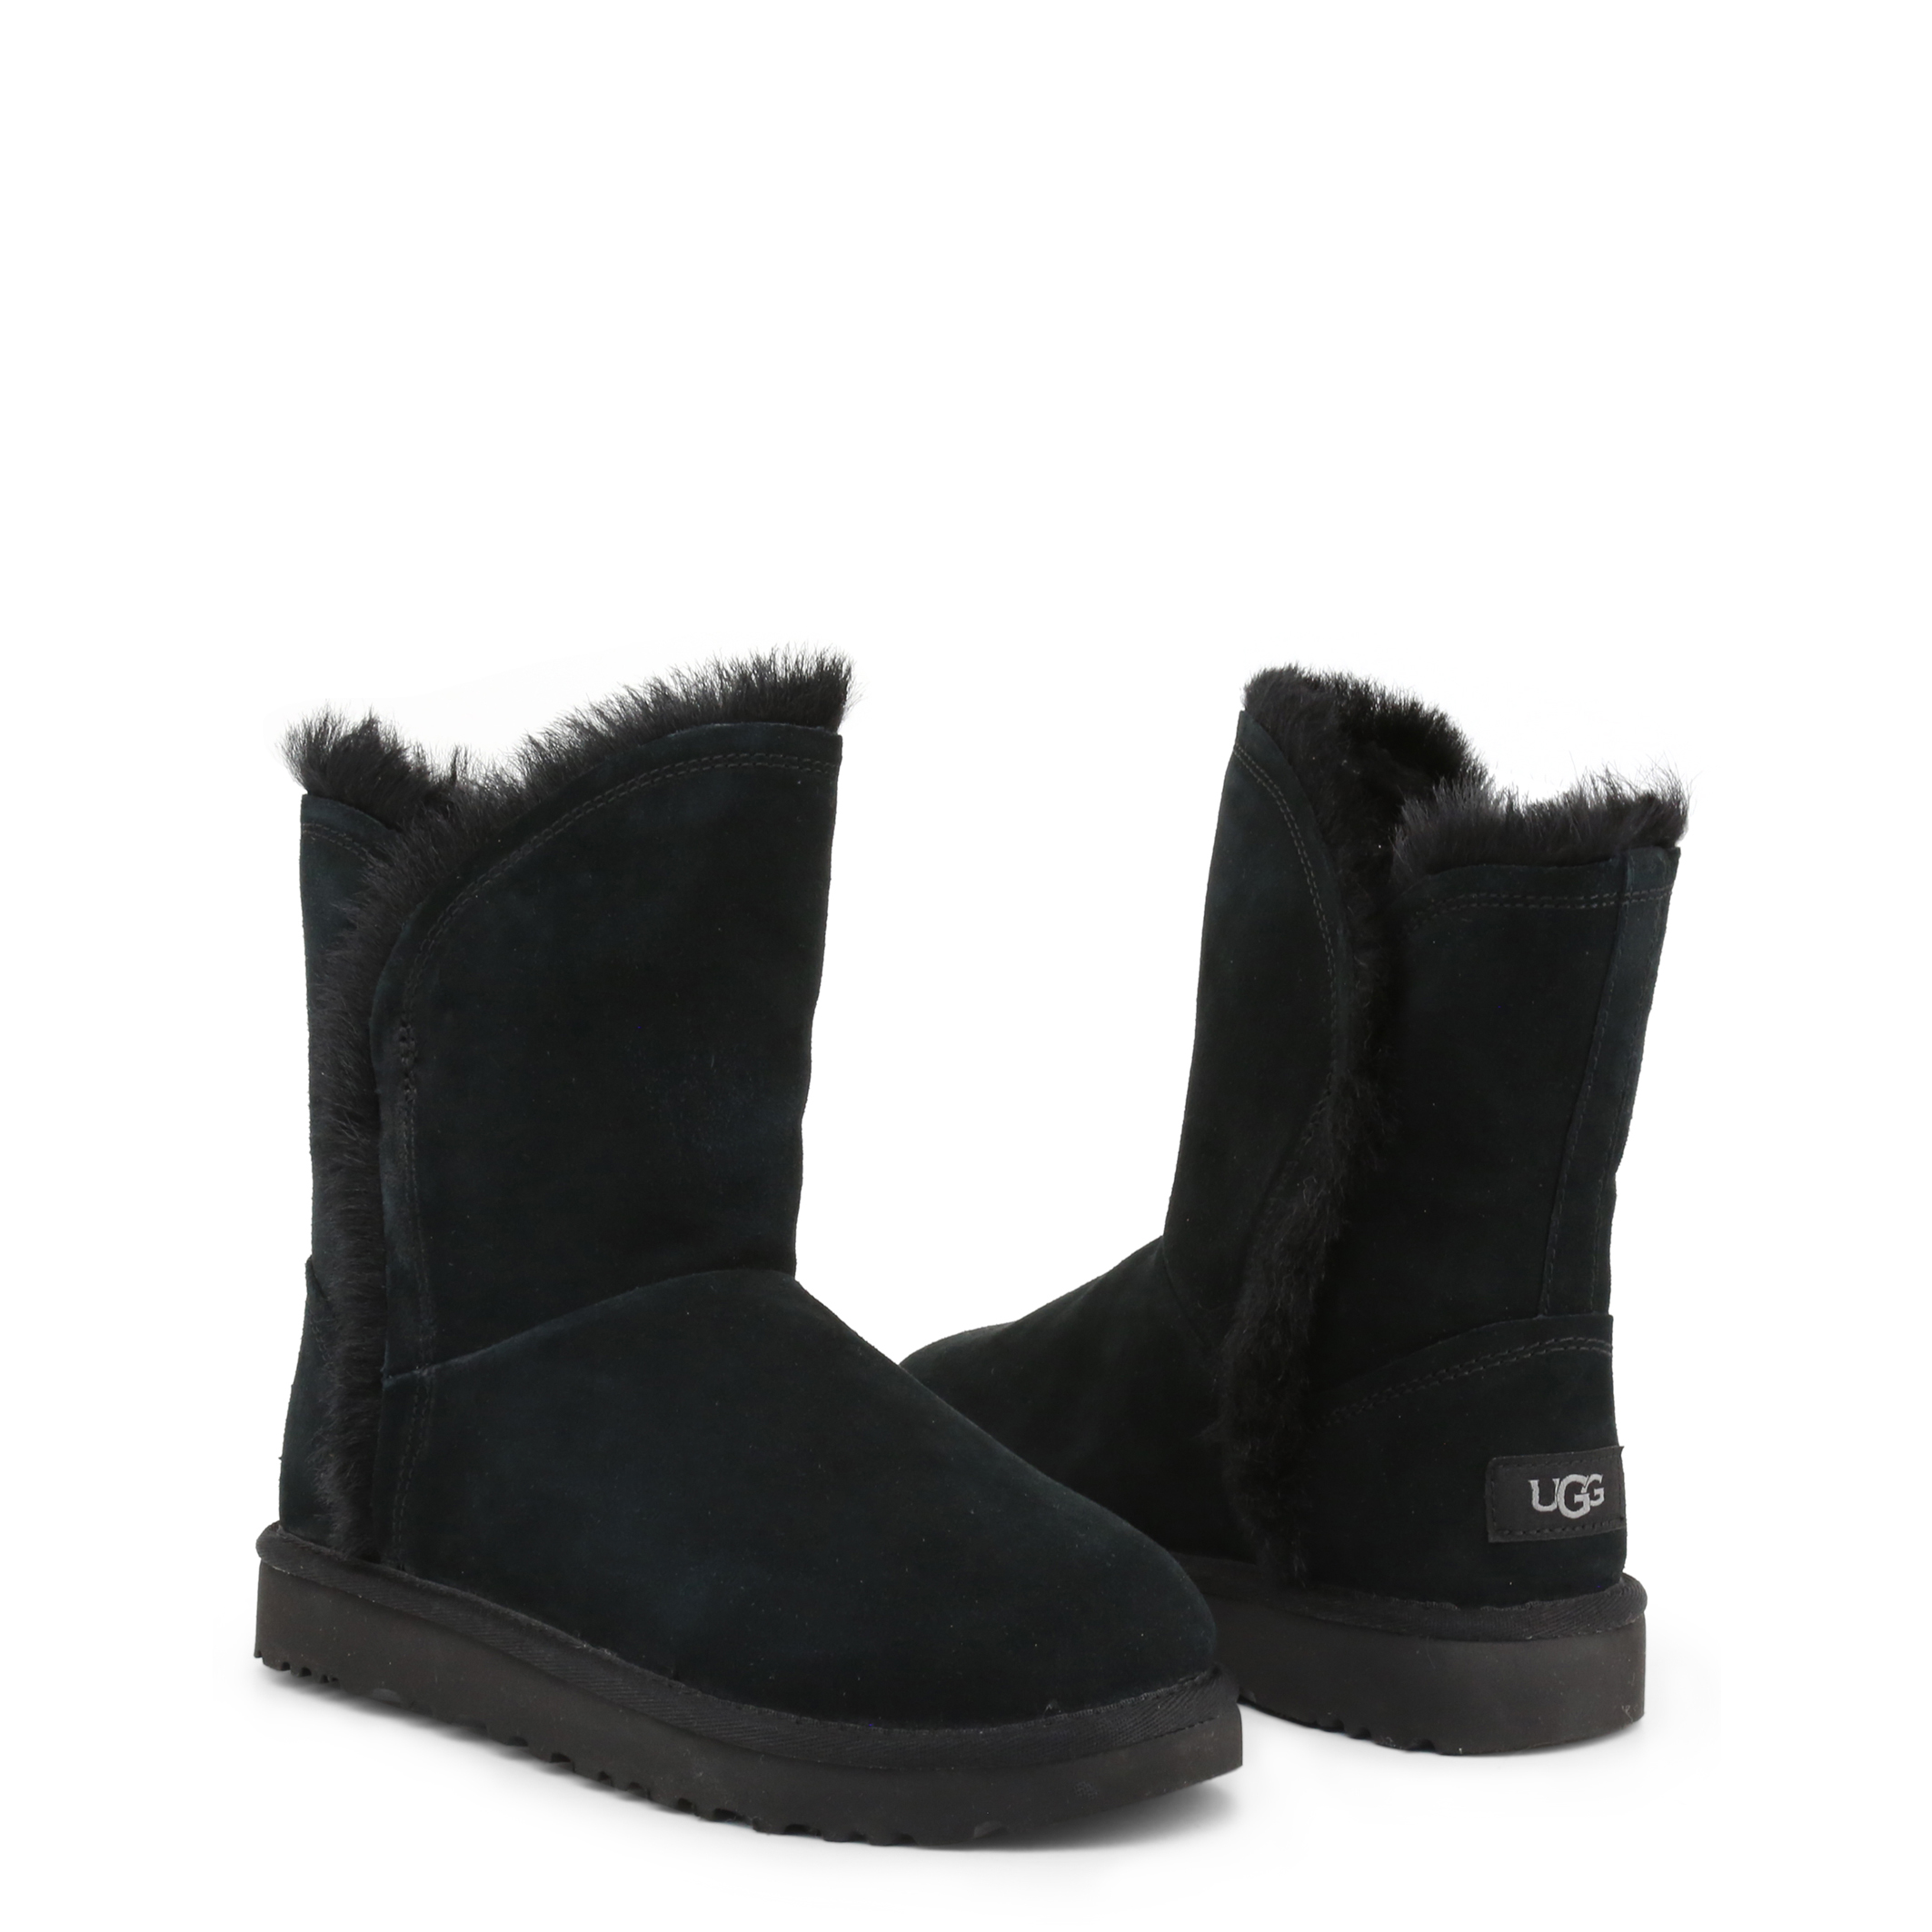 Chaussures  Ugg 1103746 black